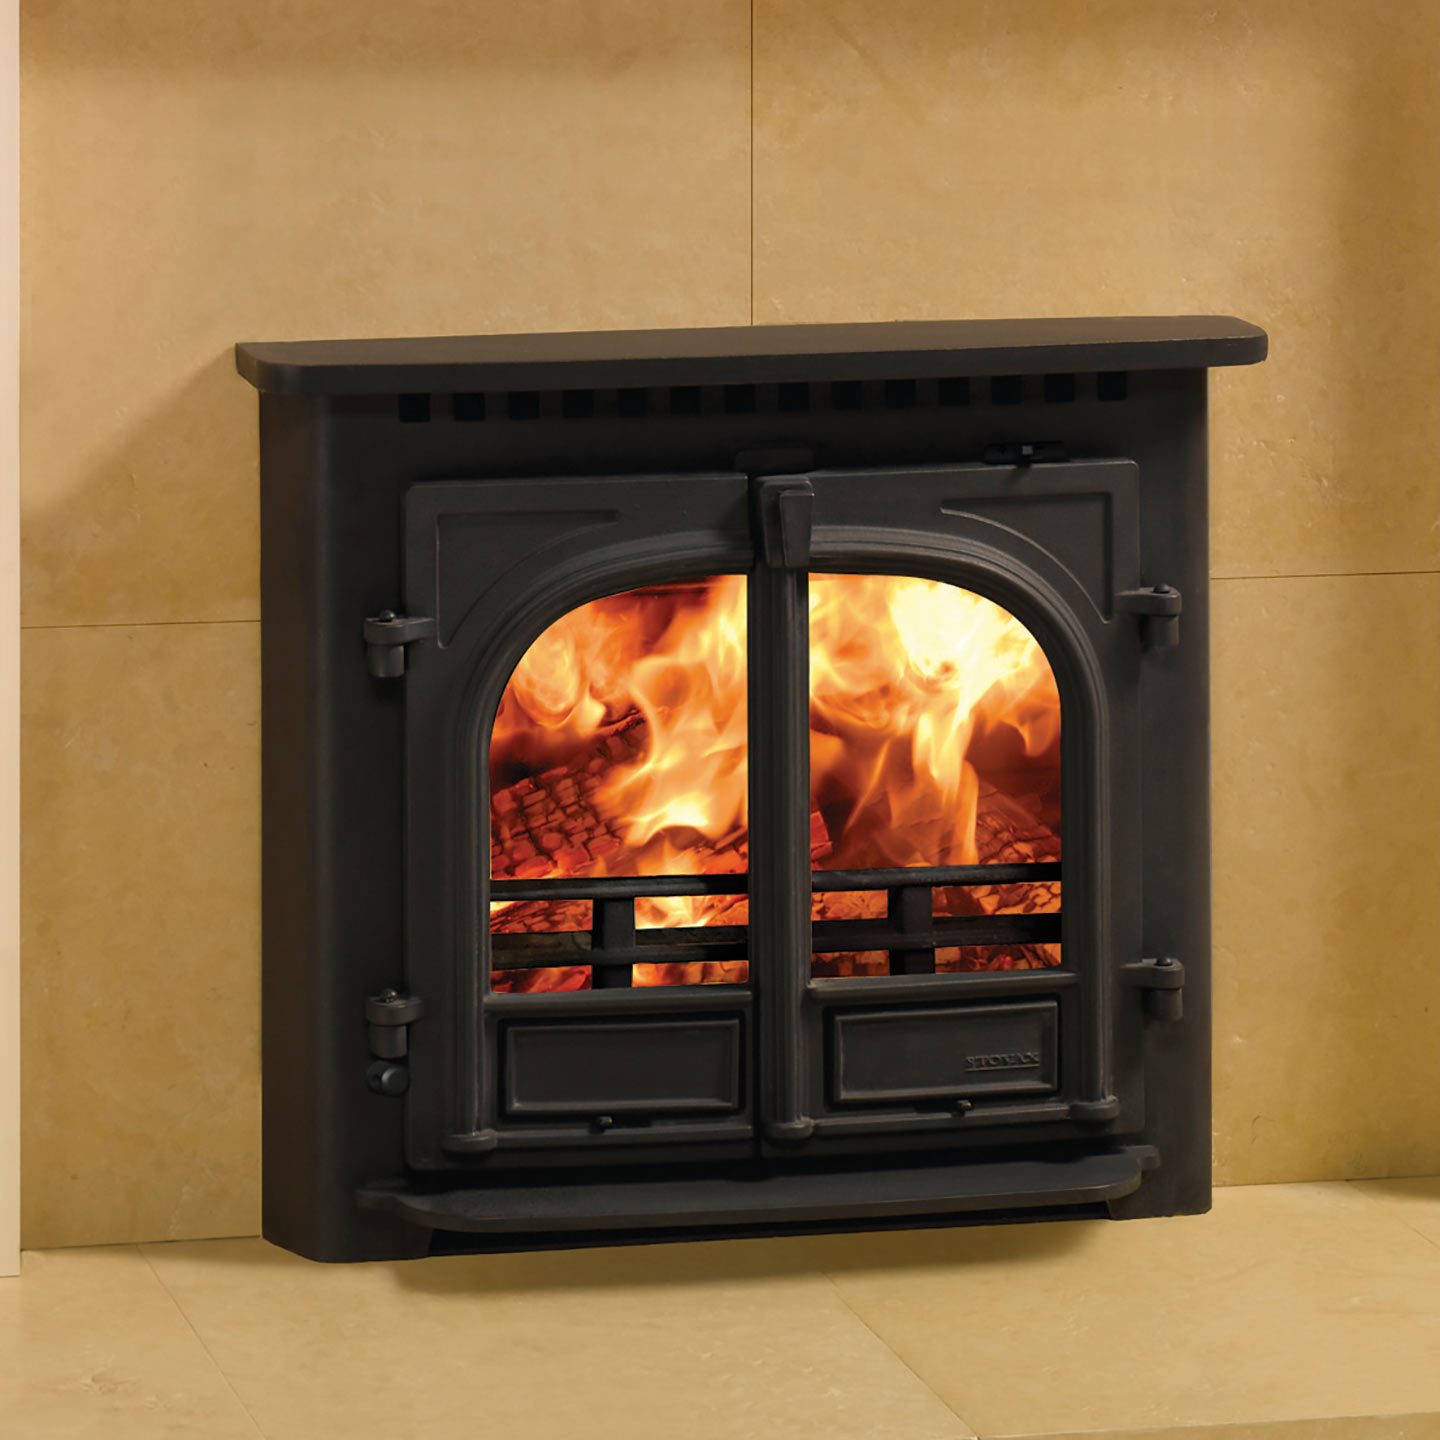 Stovax Stockton 8 Inset Convector Stove Approved Dealer